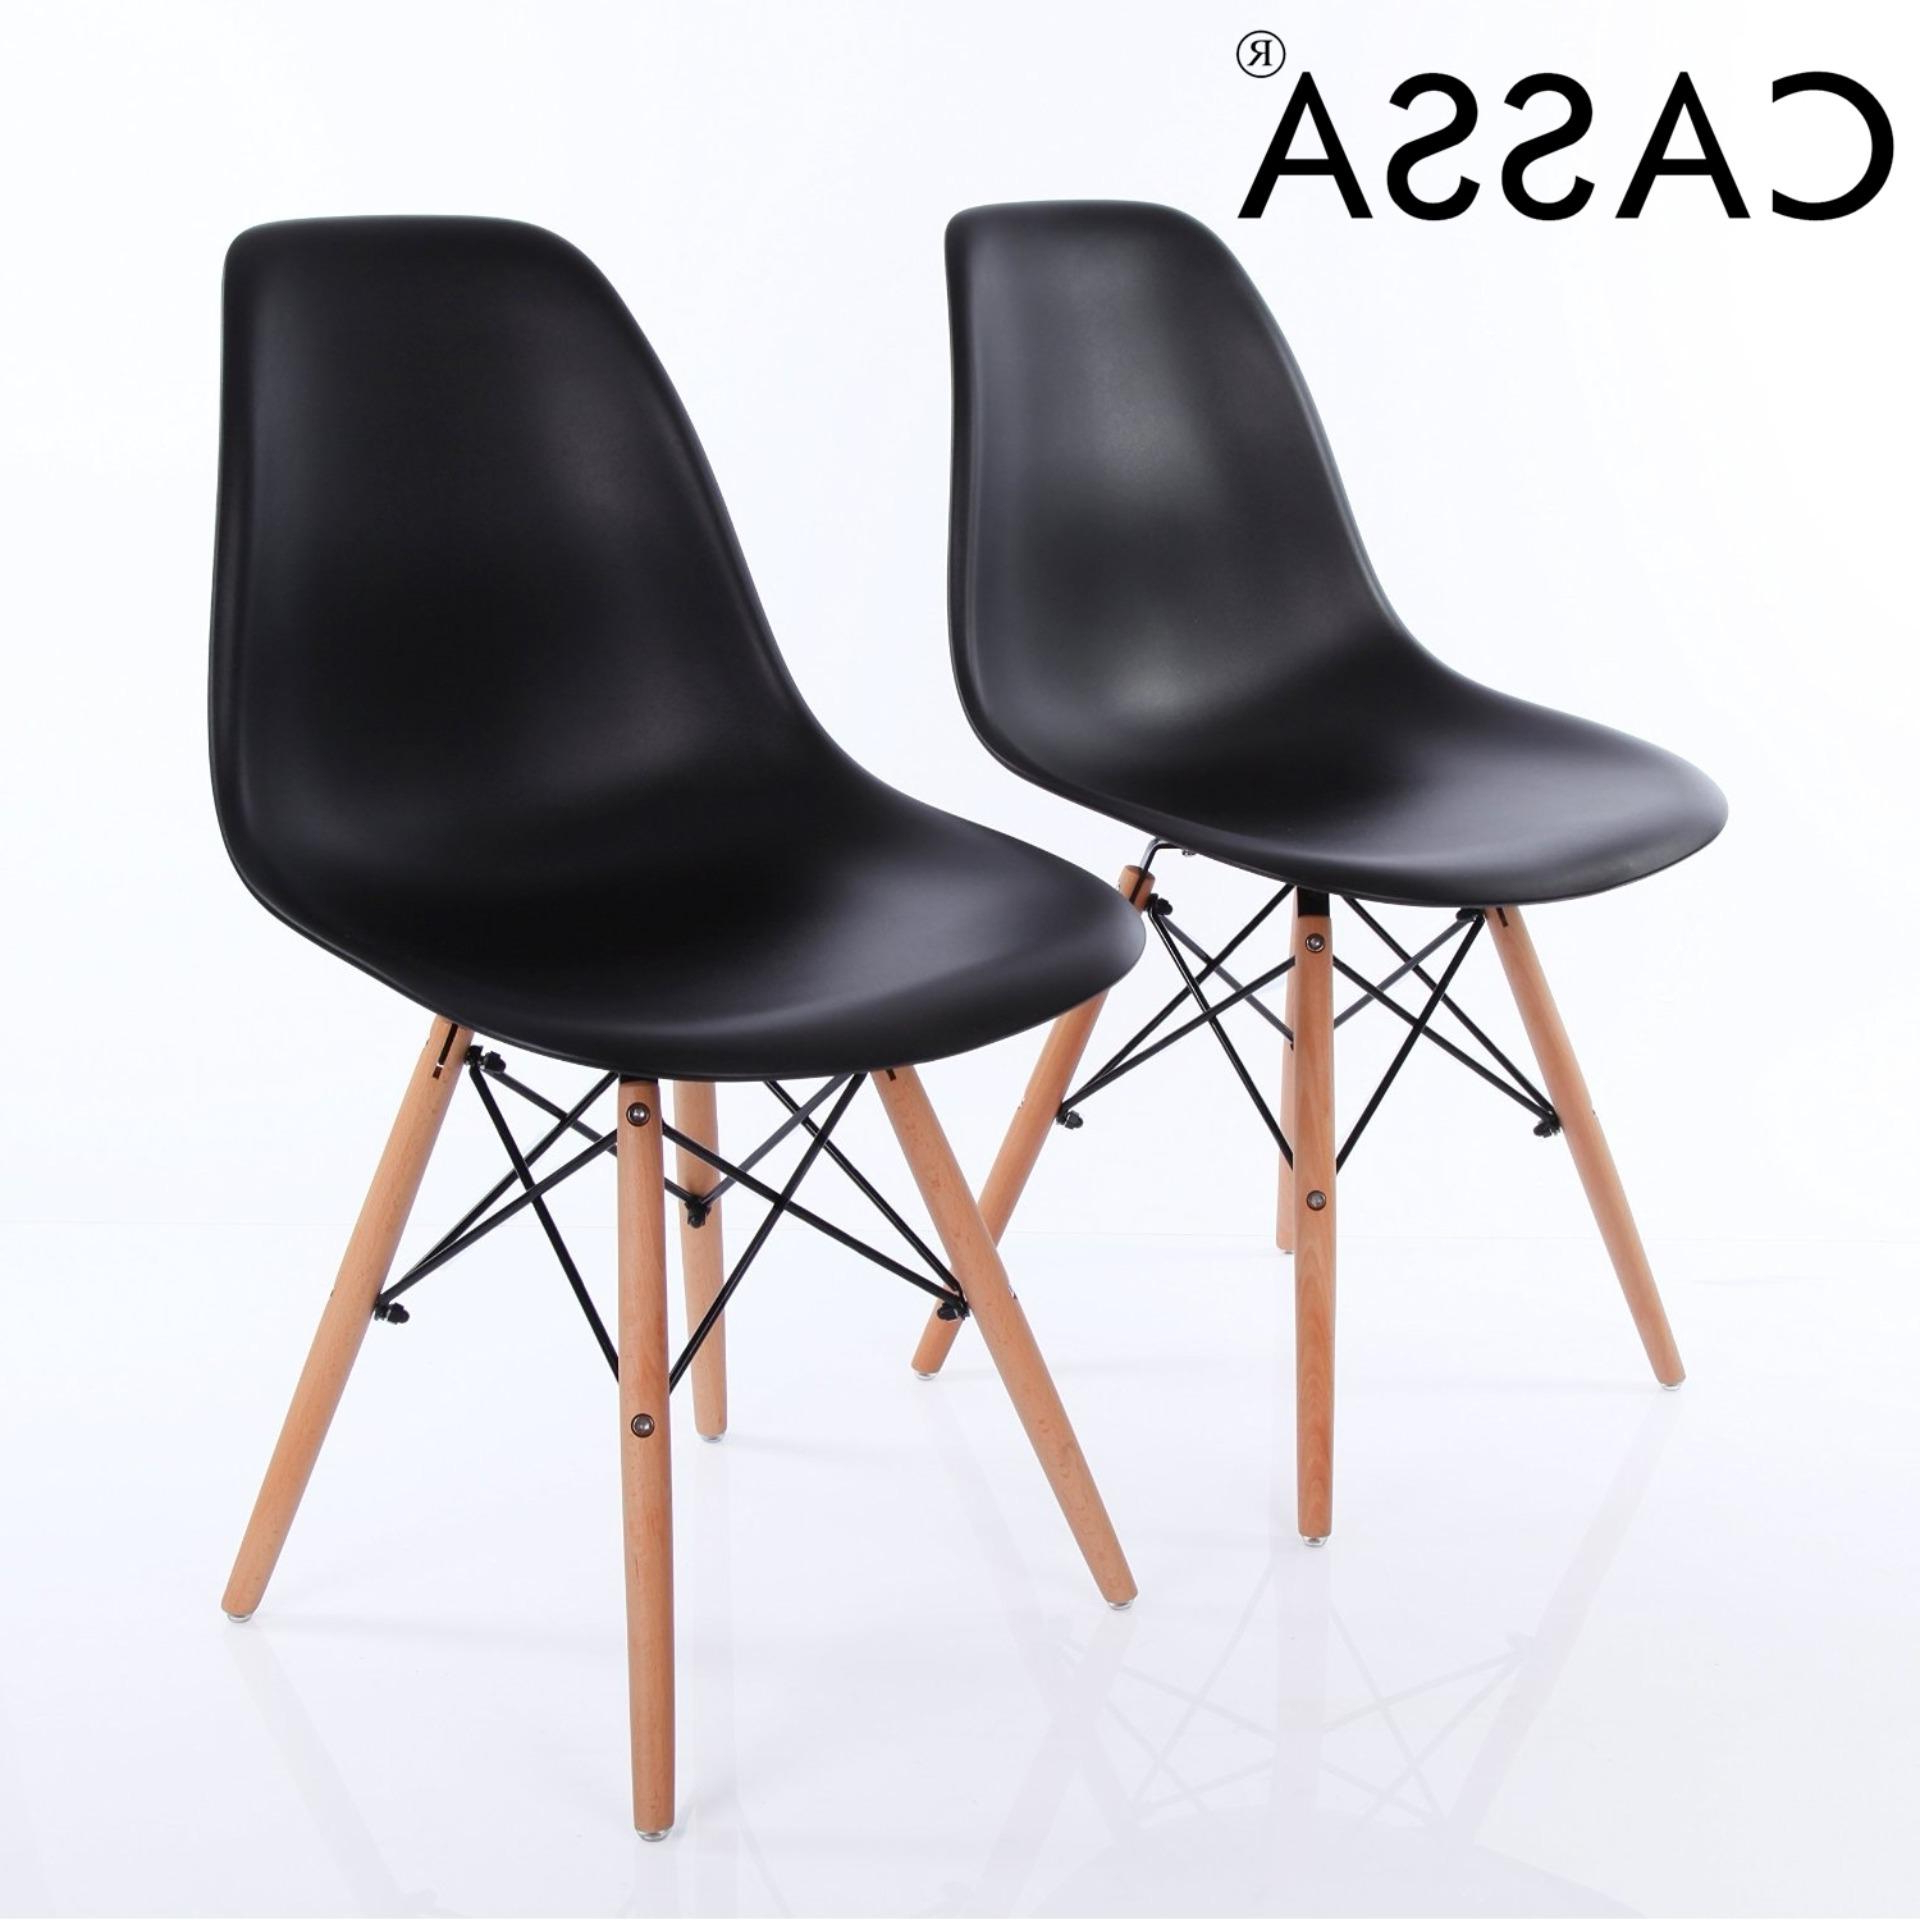 Chill Swivel Chairs With Metal Base Intended For Newest Home Home Office Chairs – Buy Home Home Office Chairs At Best Price (Gallery 12 of 20)